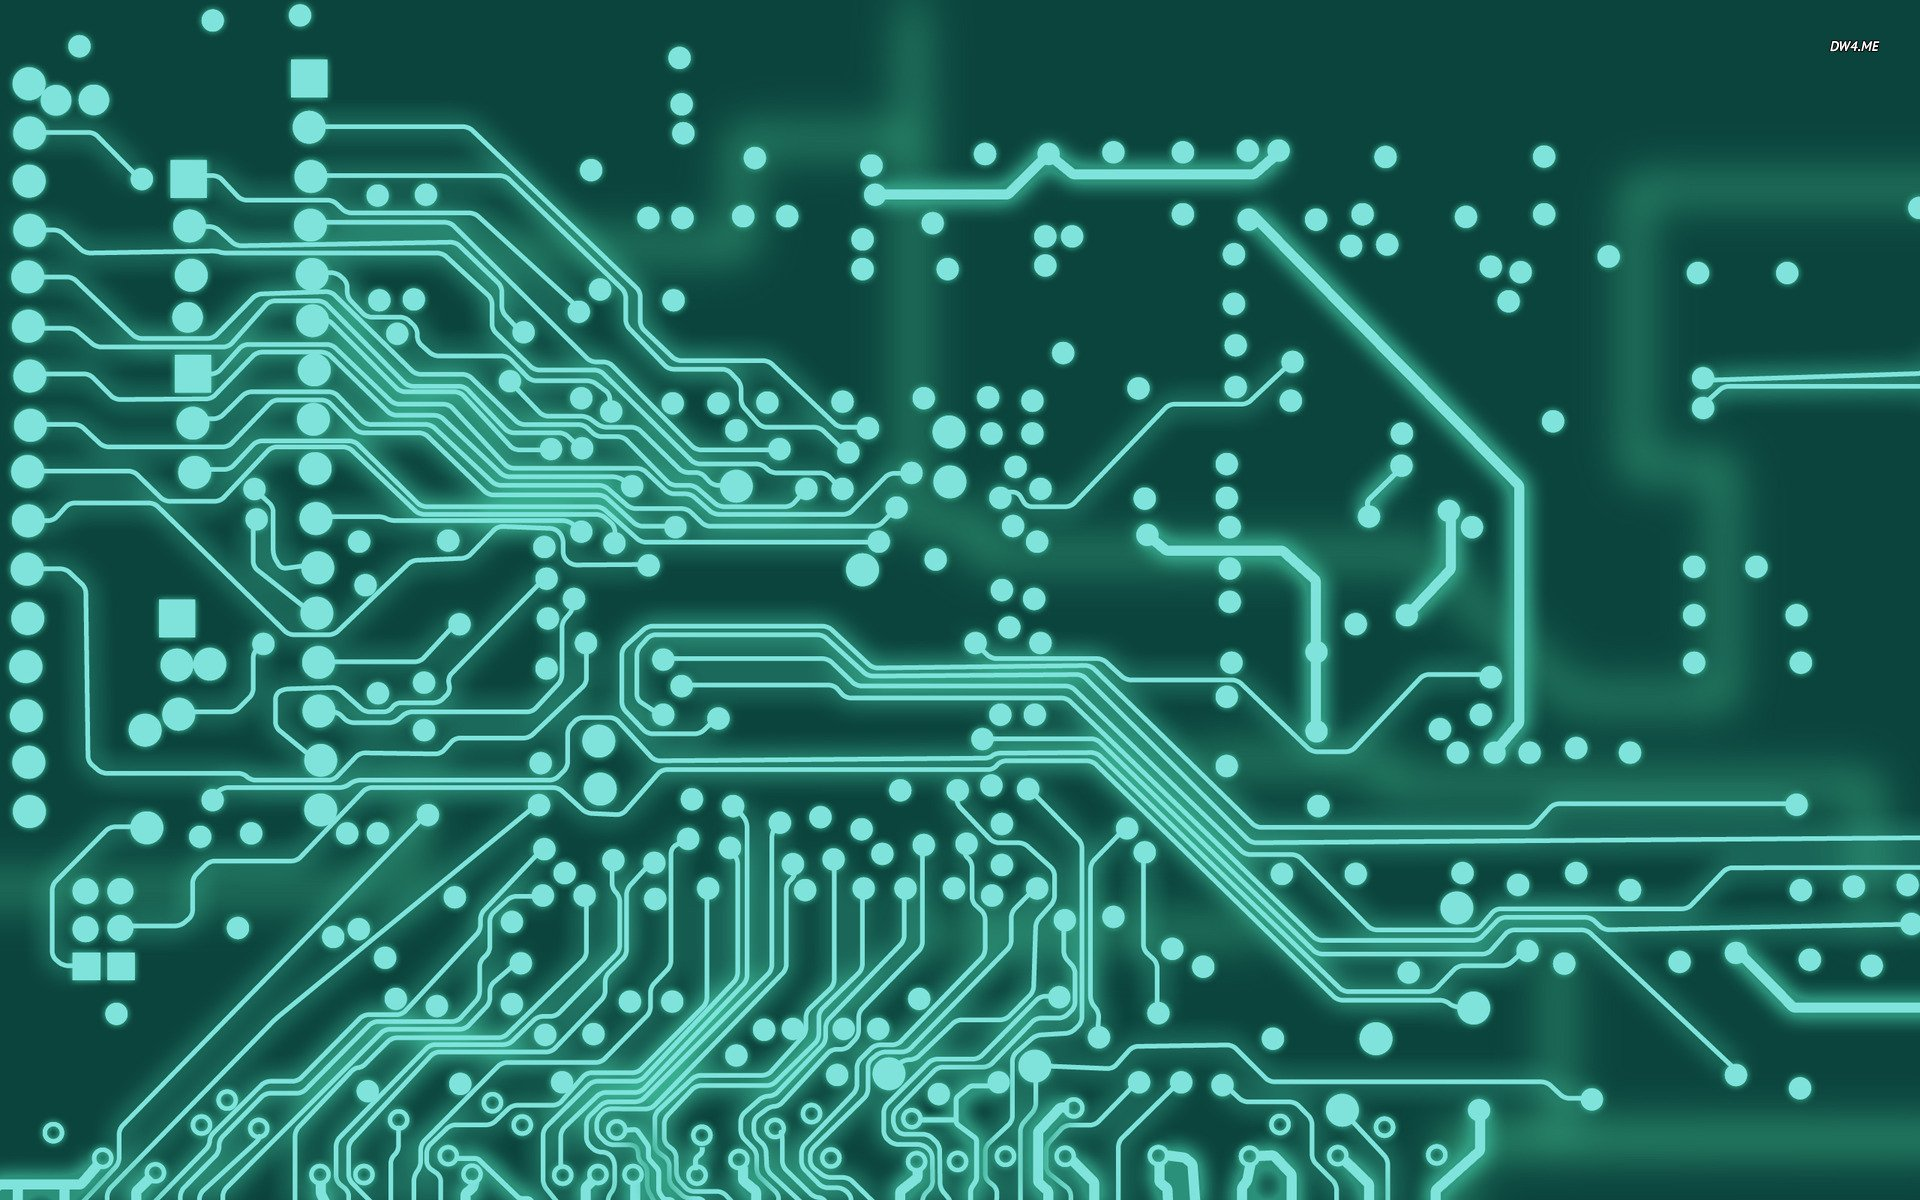 Circuit Board Wallpaper Wallpapersafari Electronic With Processor Repair Boards Stock Abstract Wallpapers 775 1920x1200